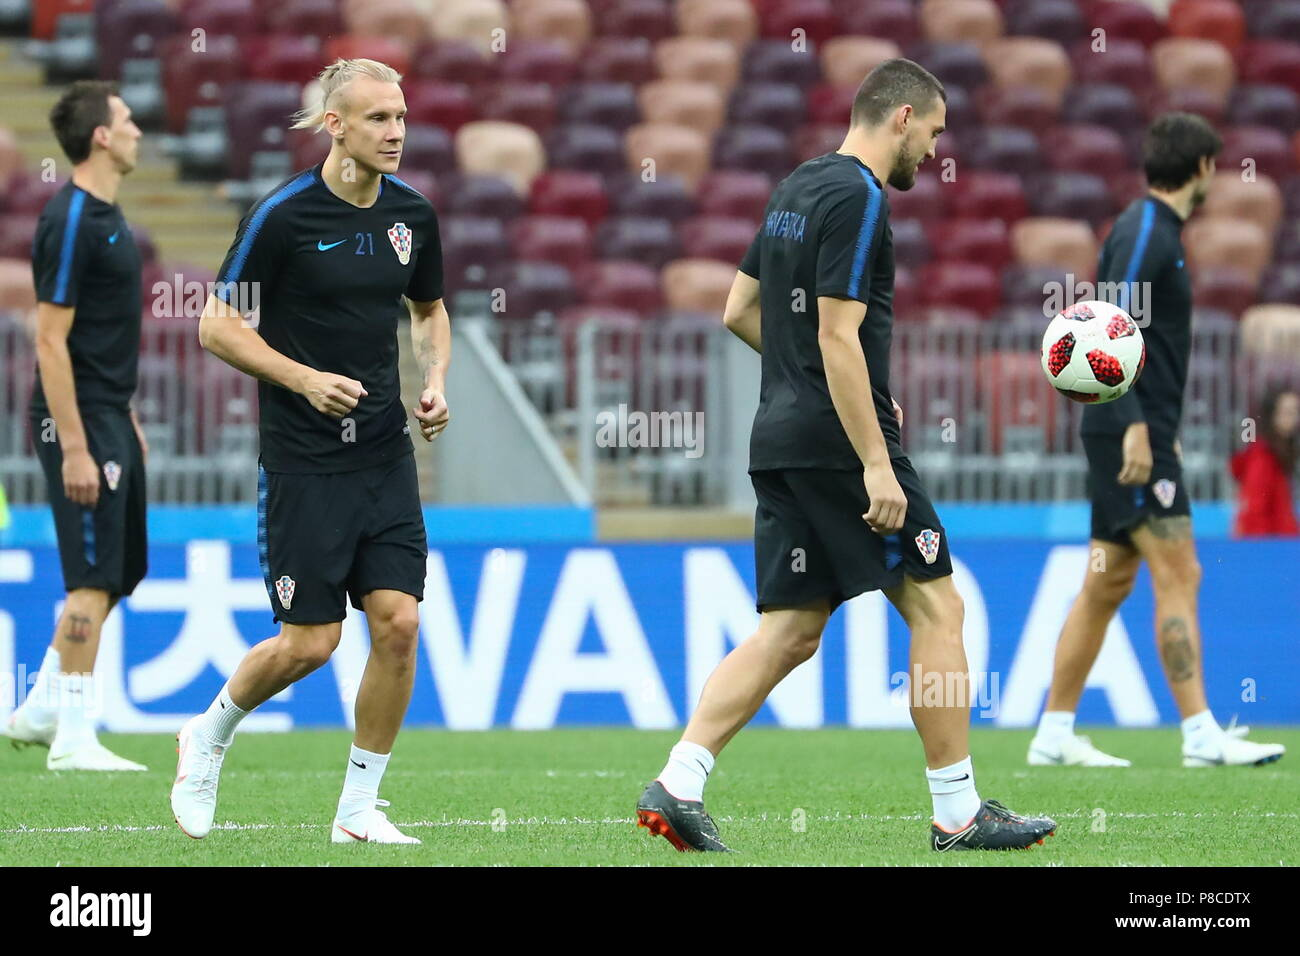 Moscow, Russia. 10th July, 2018. MOSCOW, RUSSIA - JULY 10, 2018: Members of the Croatian men's national football team during a training session ahead of the 2018 FIFA World Cup Semi-final match against England, at Luzhniki Stadium. Anton Novoderezhkin/TASS Credit: ITAR-TASS News Agency/Alamy Live News - Stock Image